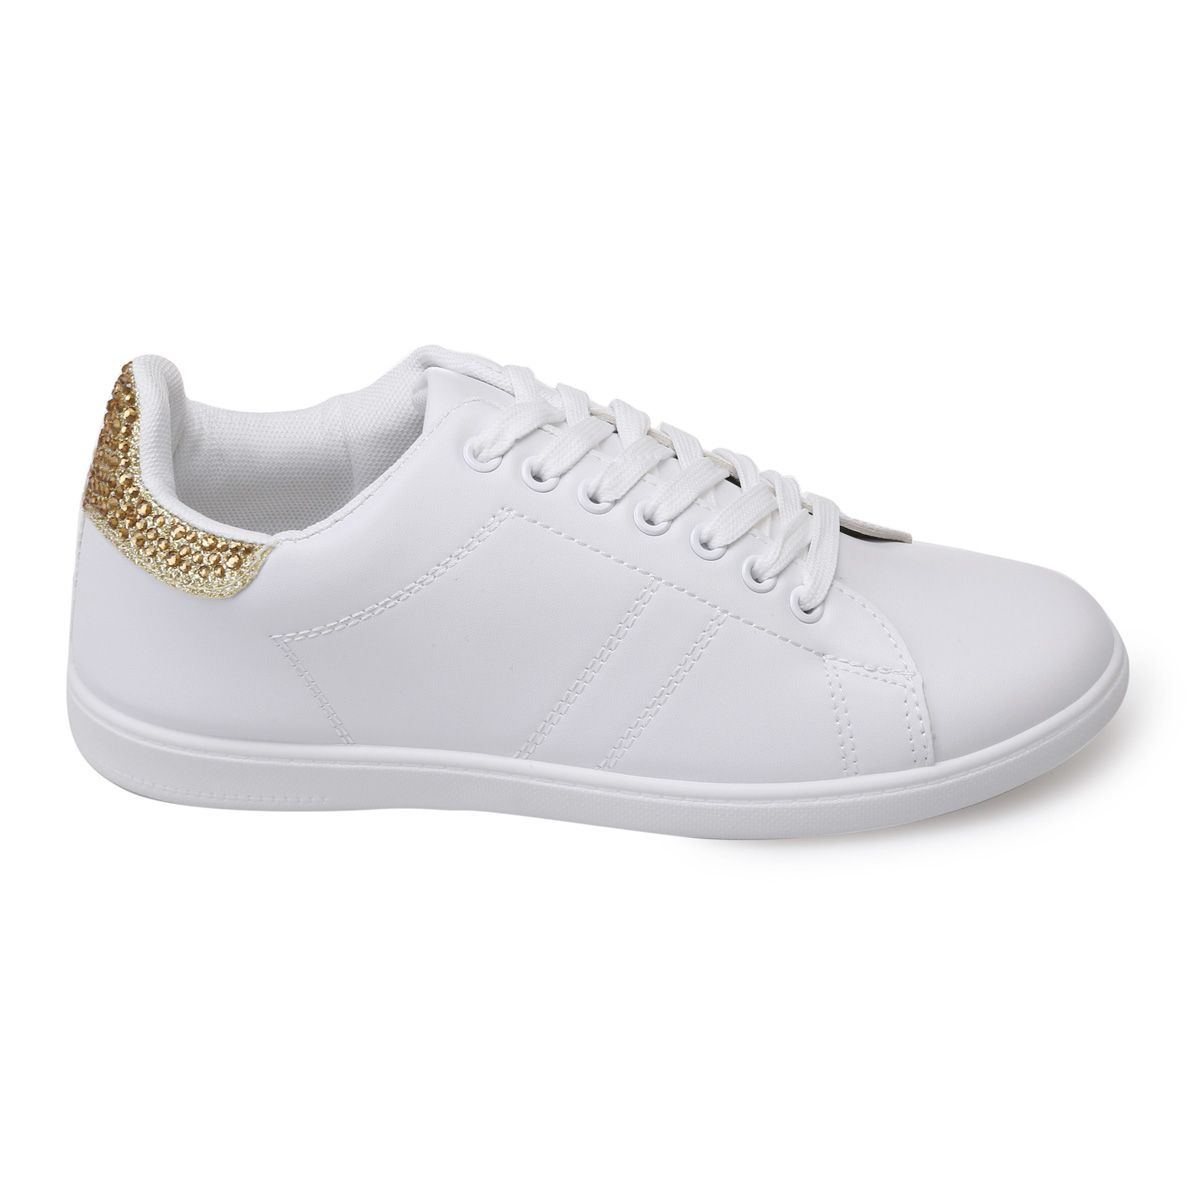 big sale 6ef9f 47cfb baskets-blanches-en-simili-cuir-a-strass-dores.jpg